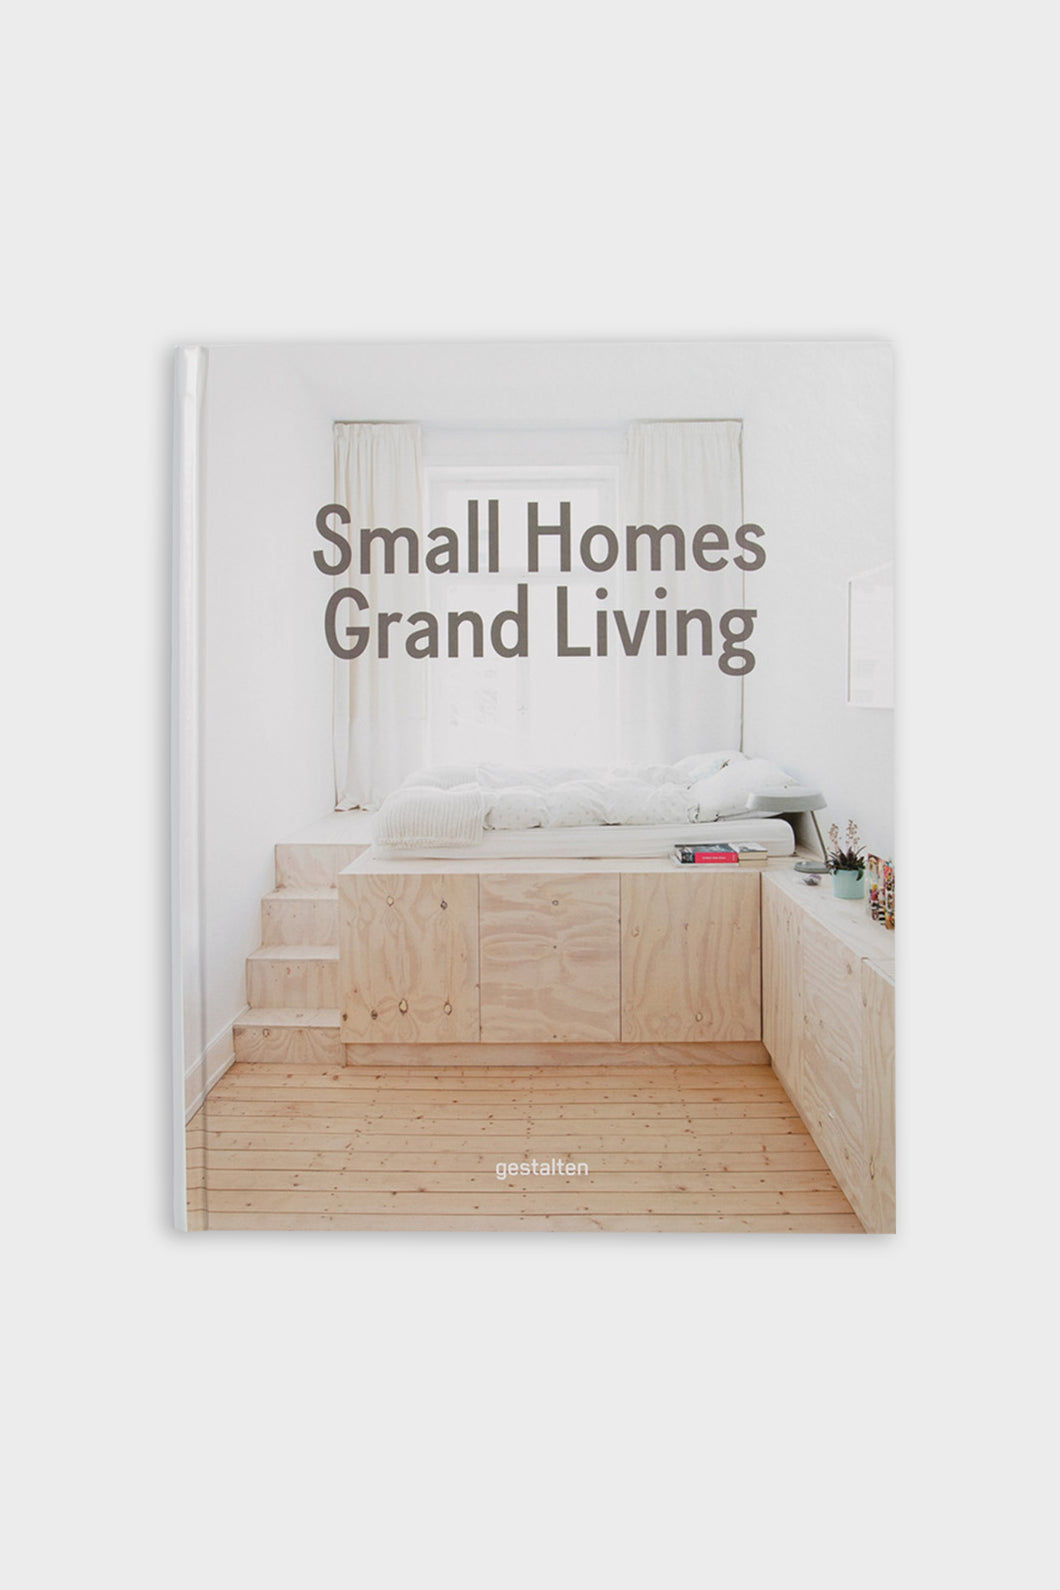 Small Homes, Grand Living: Interior Design for Small Spaces